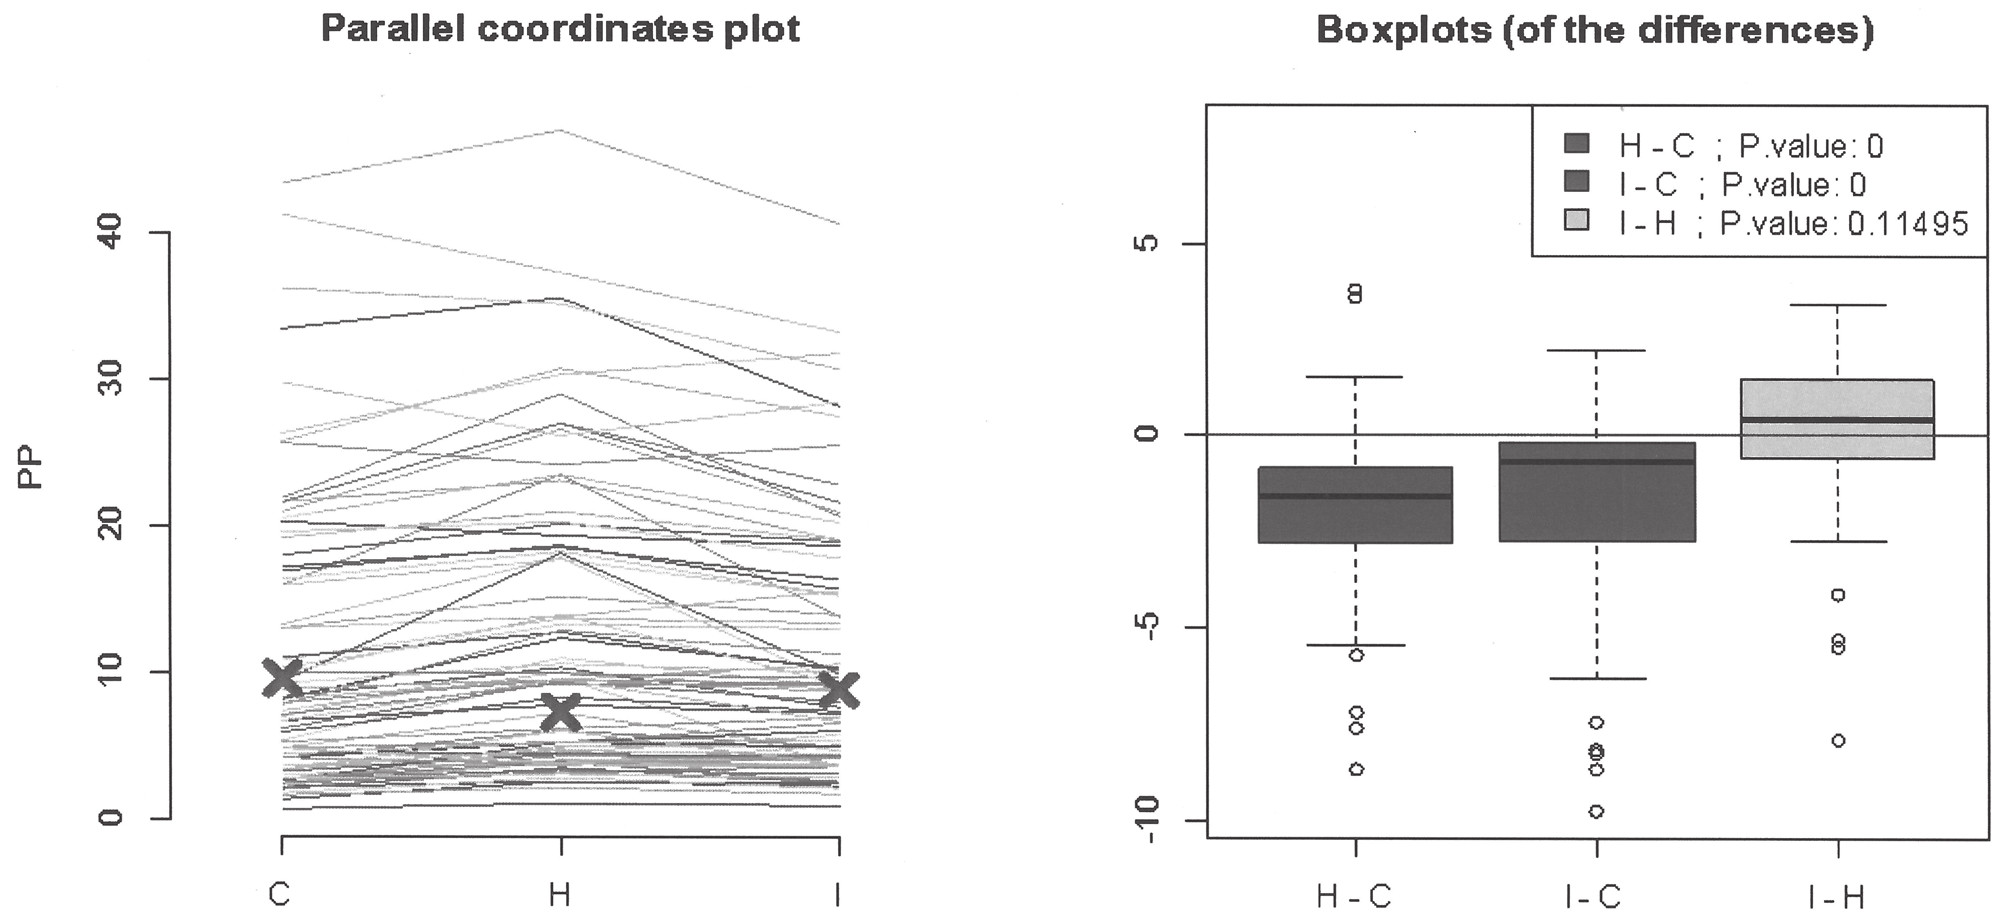 Assessment of mutual differences between analyzers on the type of paraprotein using parallel coordinates plot and boxplots.